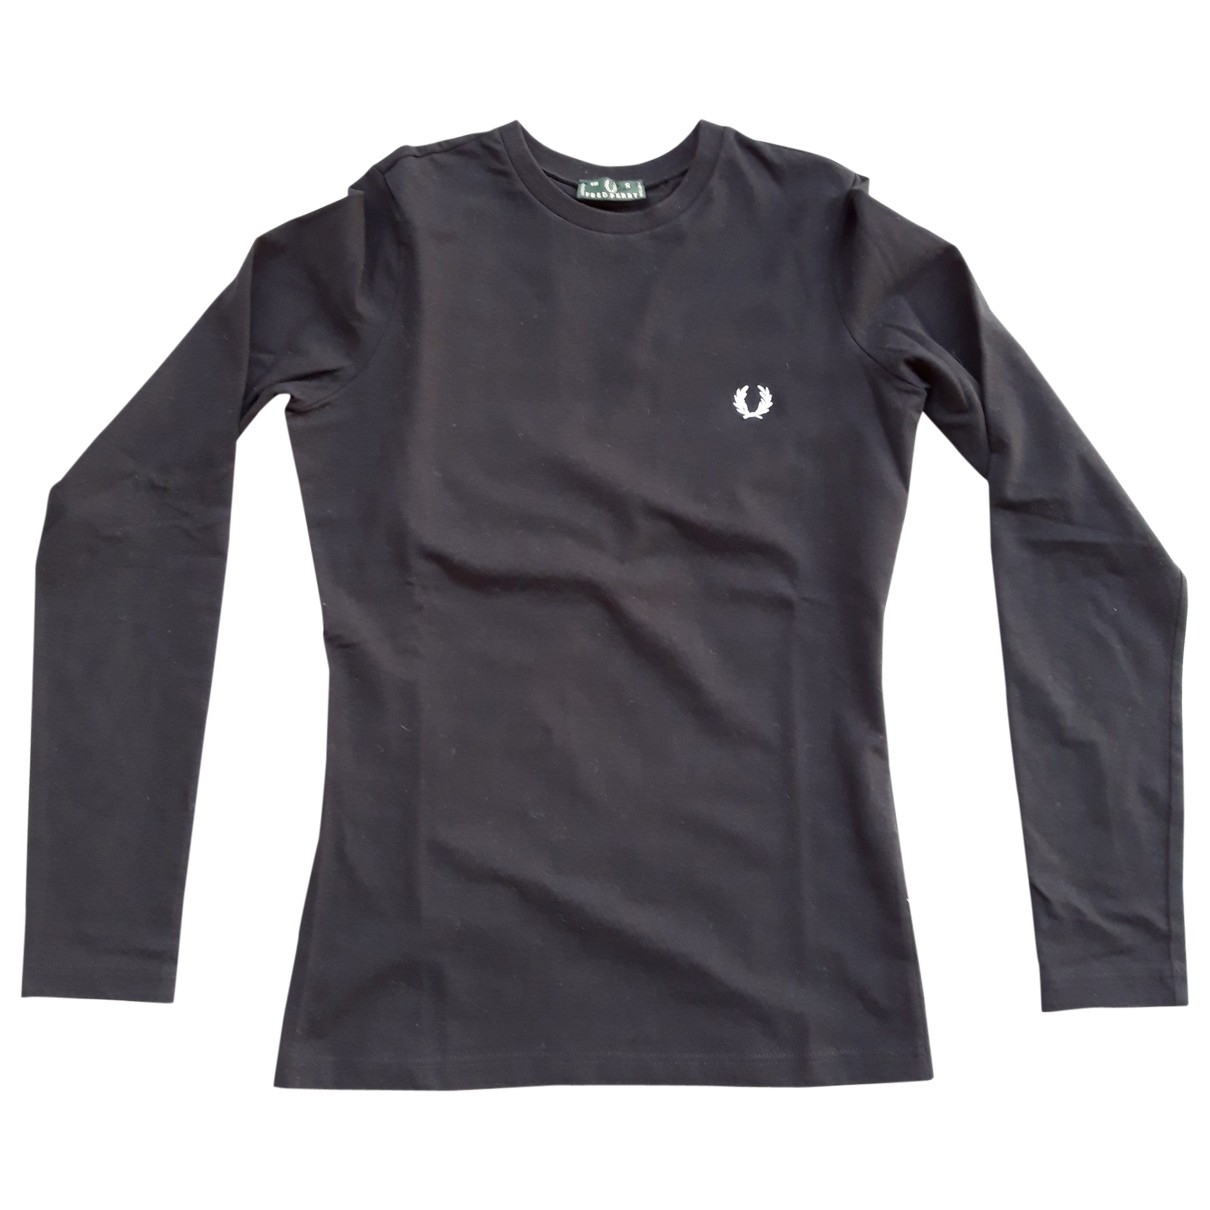 Fred Perry \N Black Cotton  top for Women S International